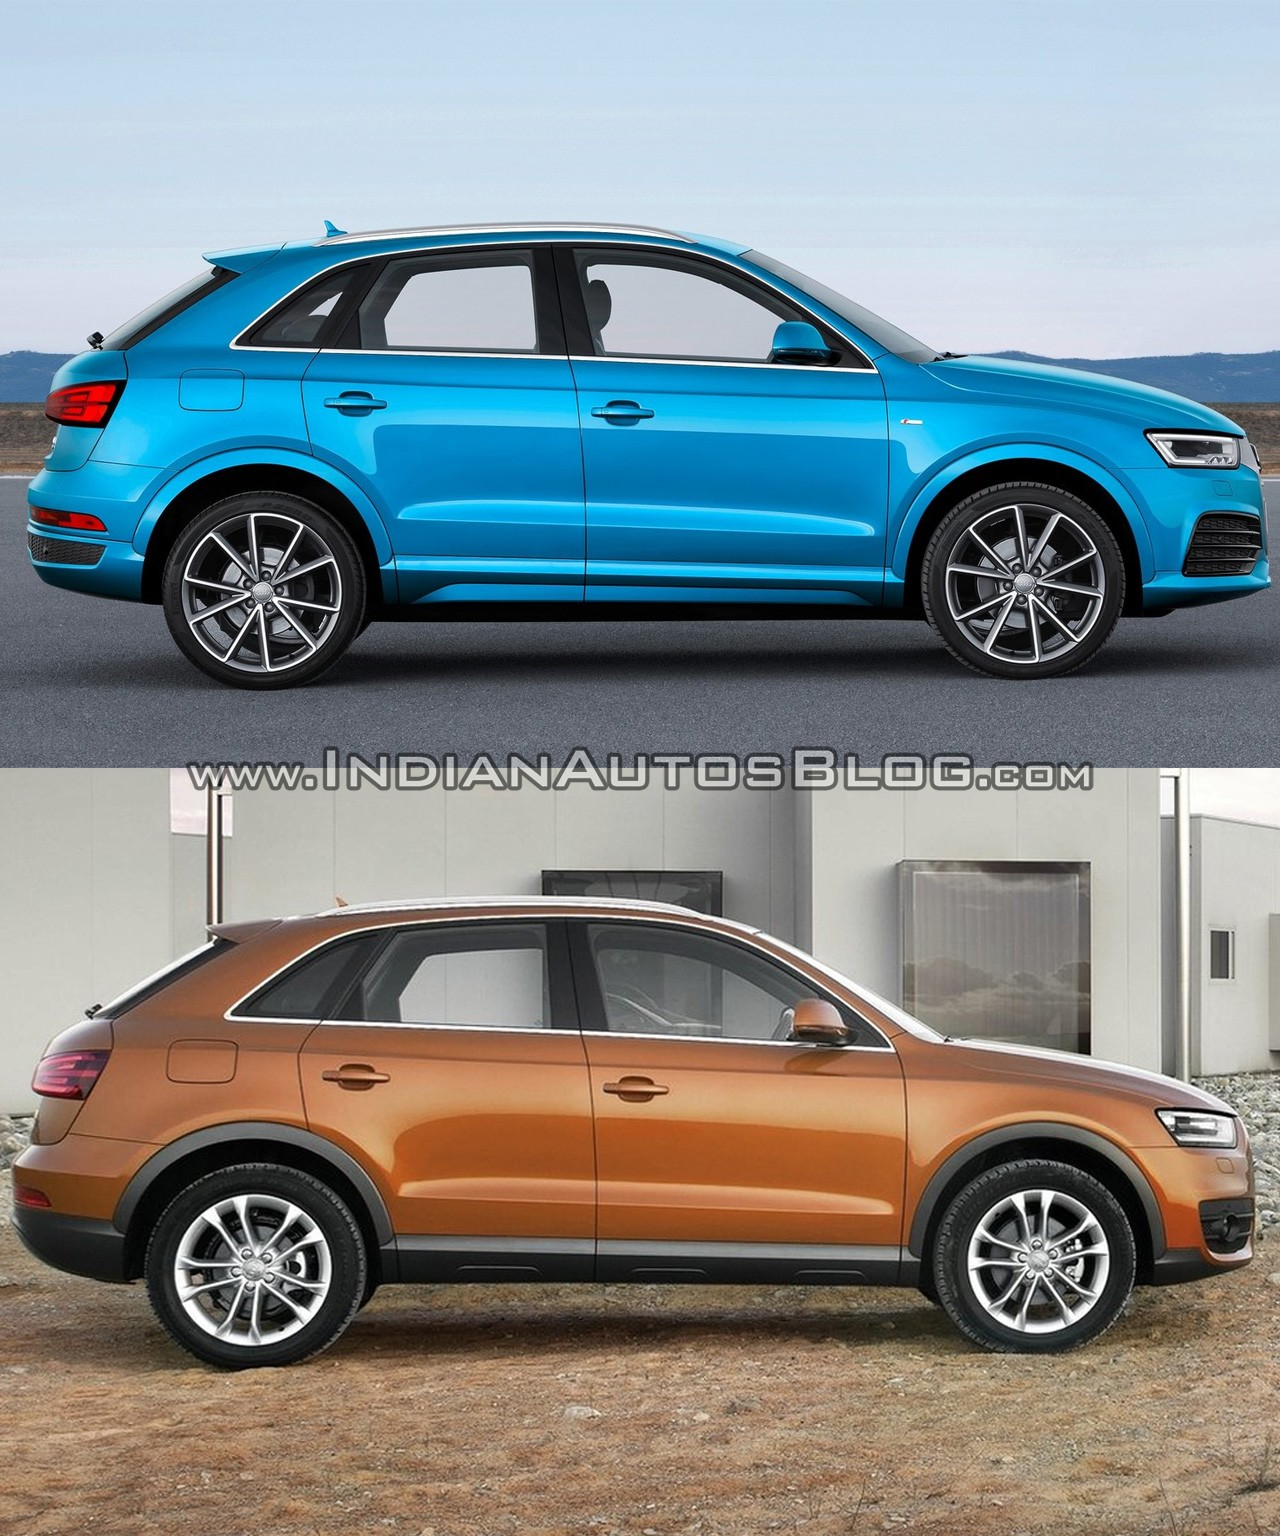 2015 Audi Q3 facelift vs older model side